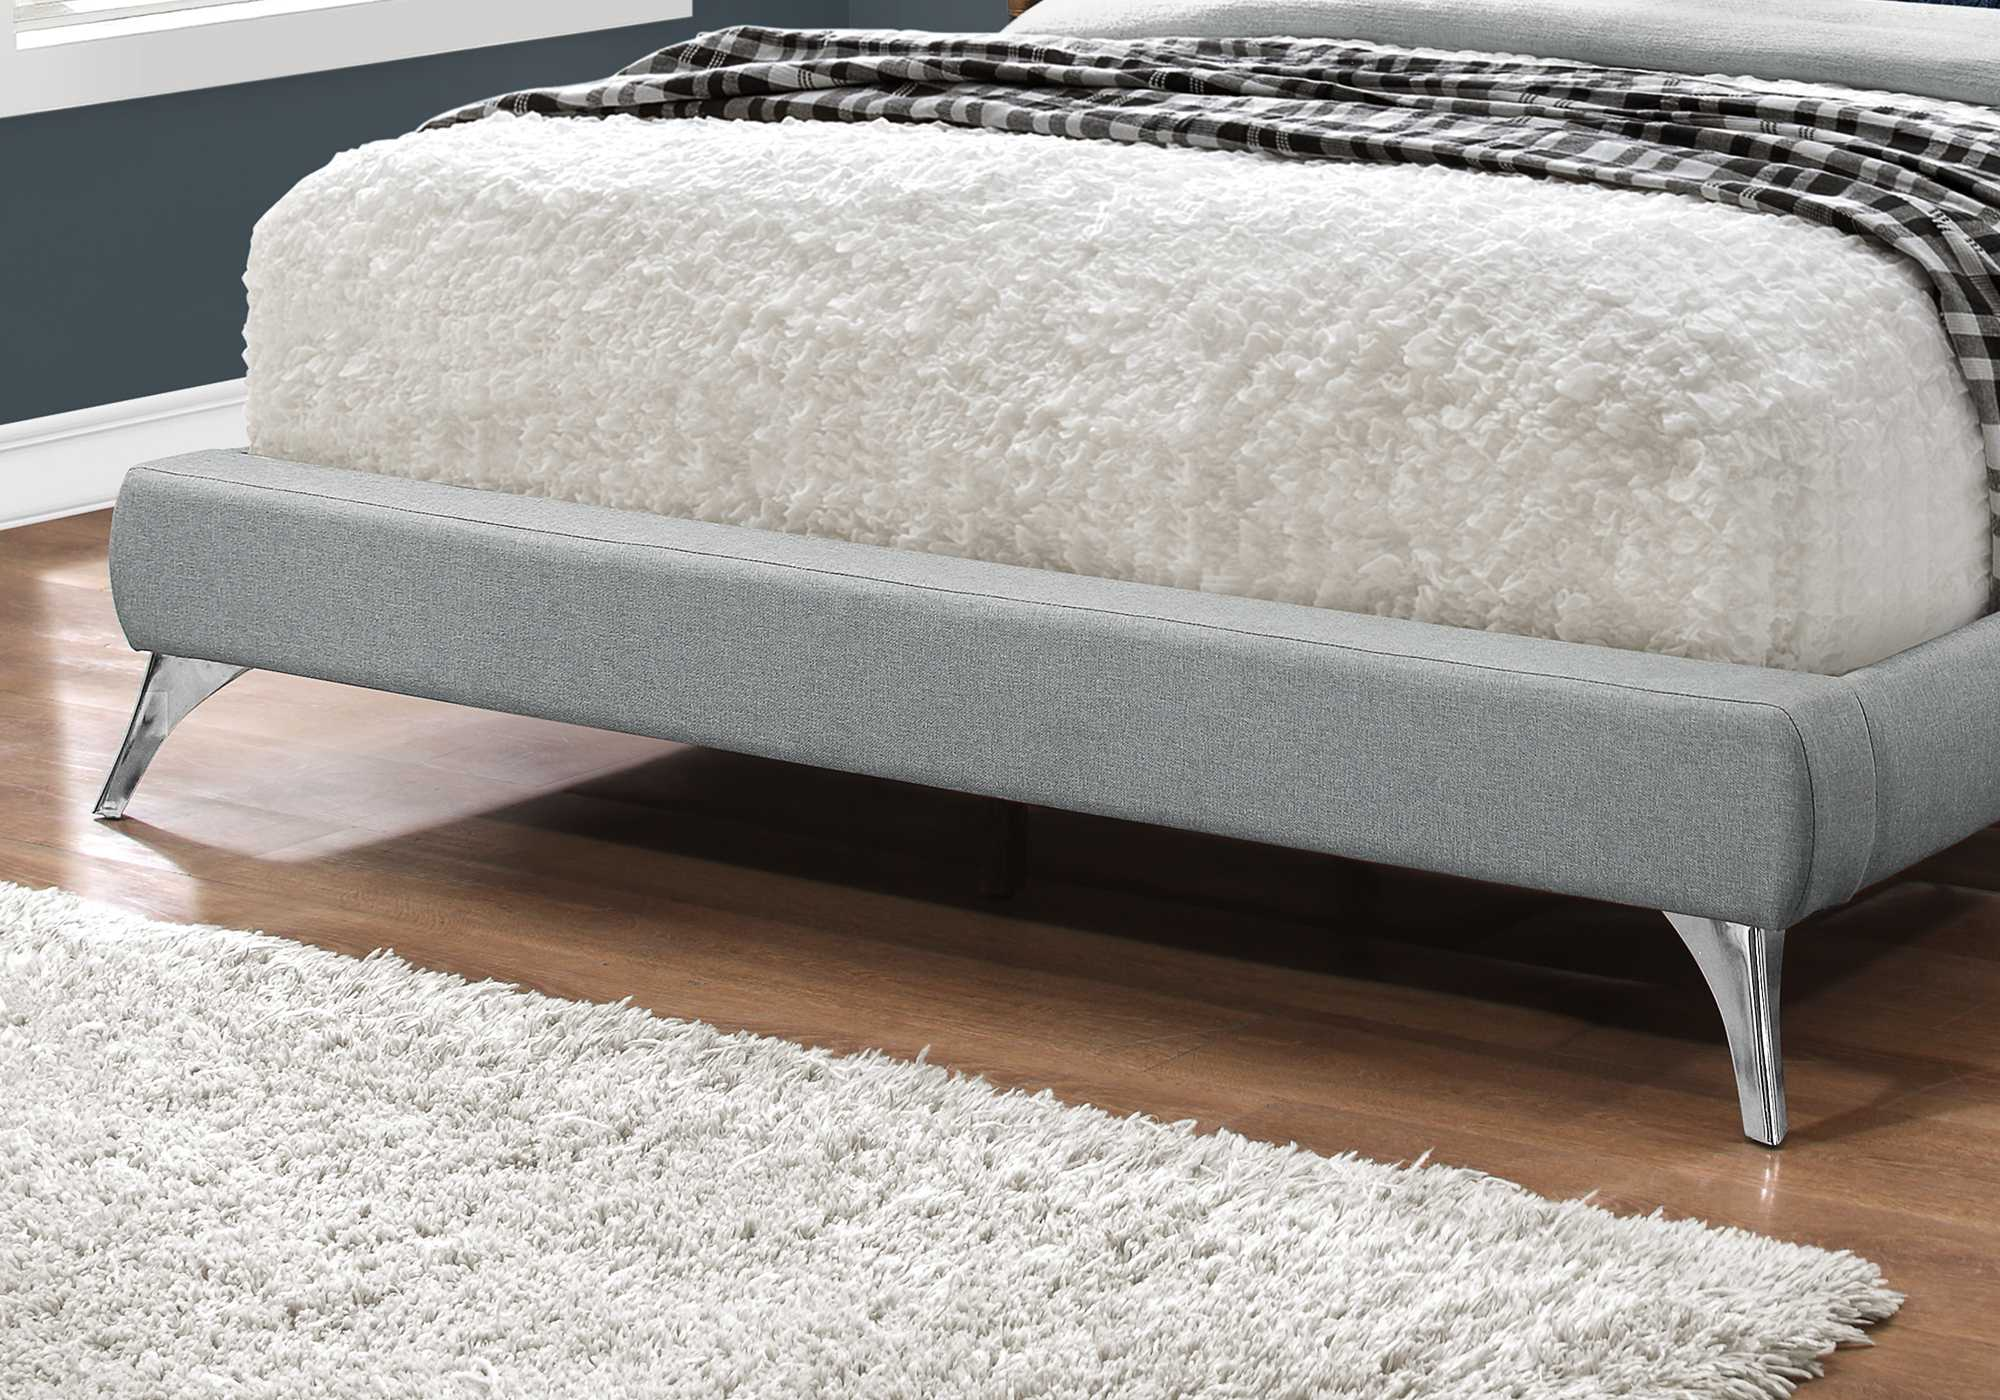 "70'.5"" x 87'.25"" x 45'.25"" Grey, Foam, Solid Wood, Linen - Queen Sized Bed With Chrome Legs"